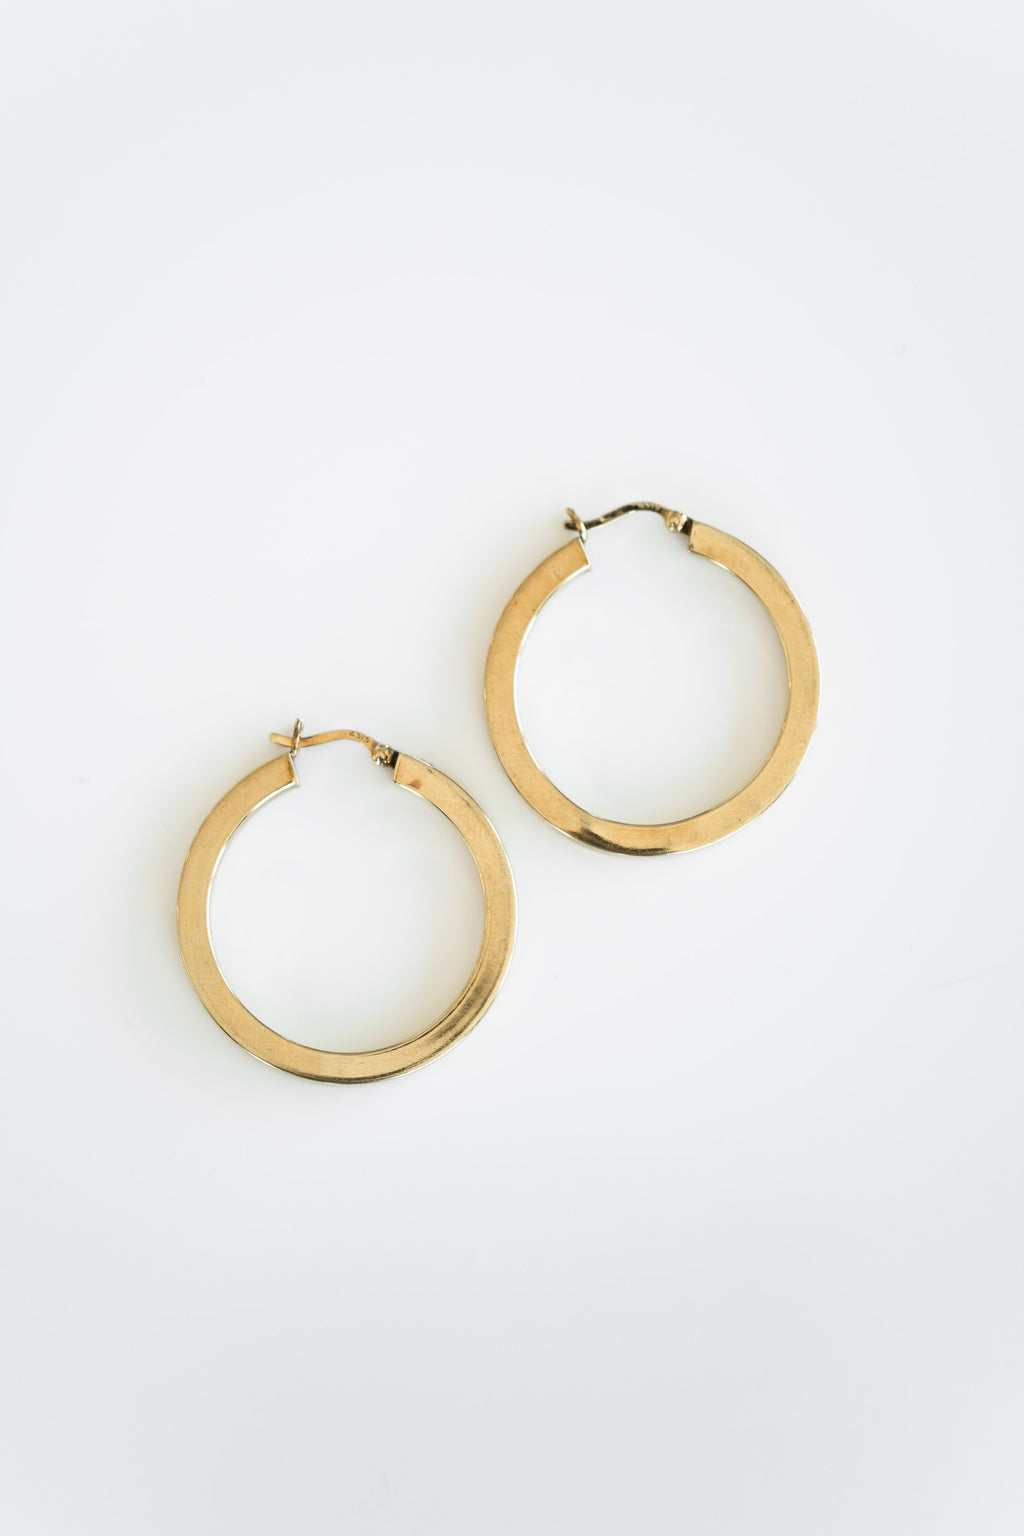 9K SQUARE STOCK HOOPS